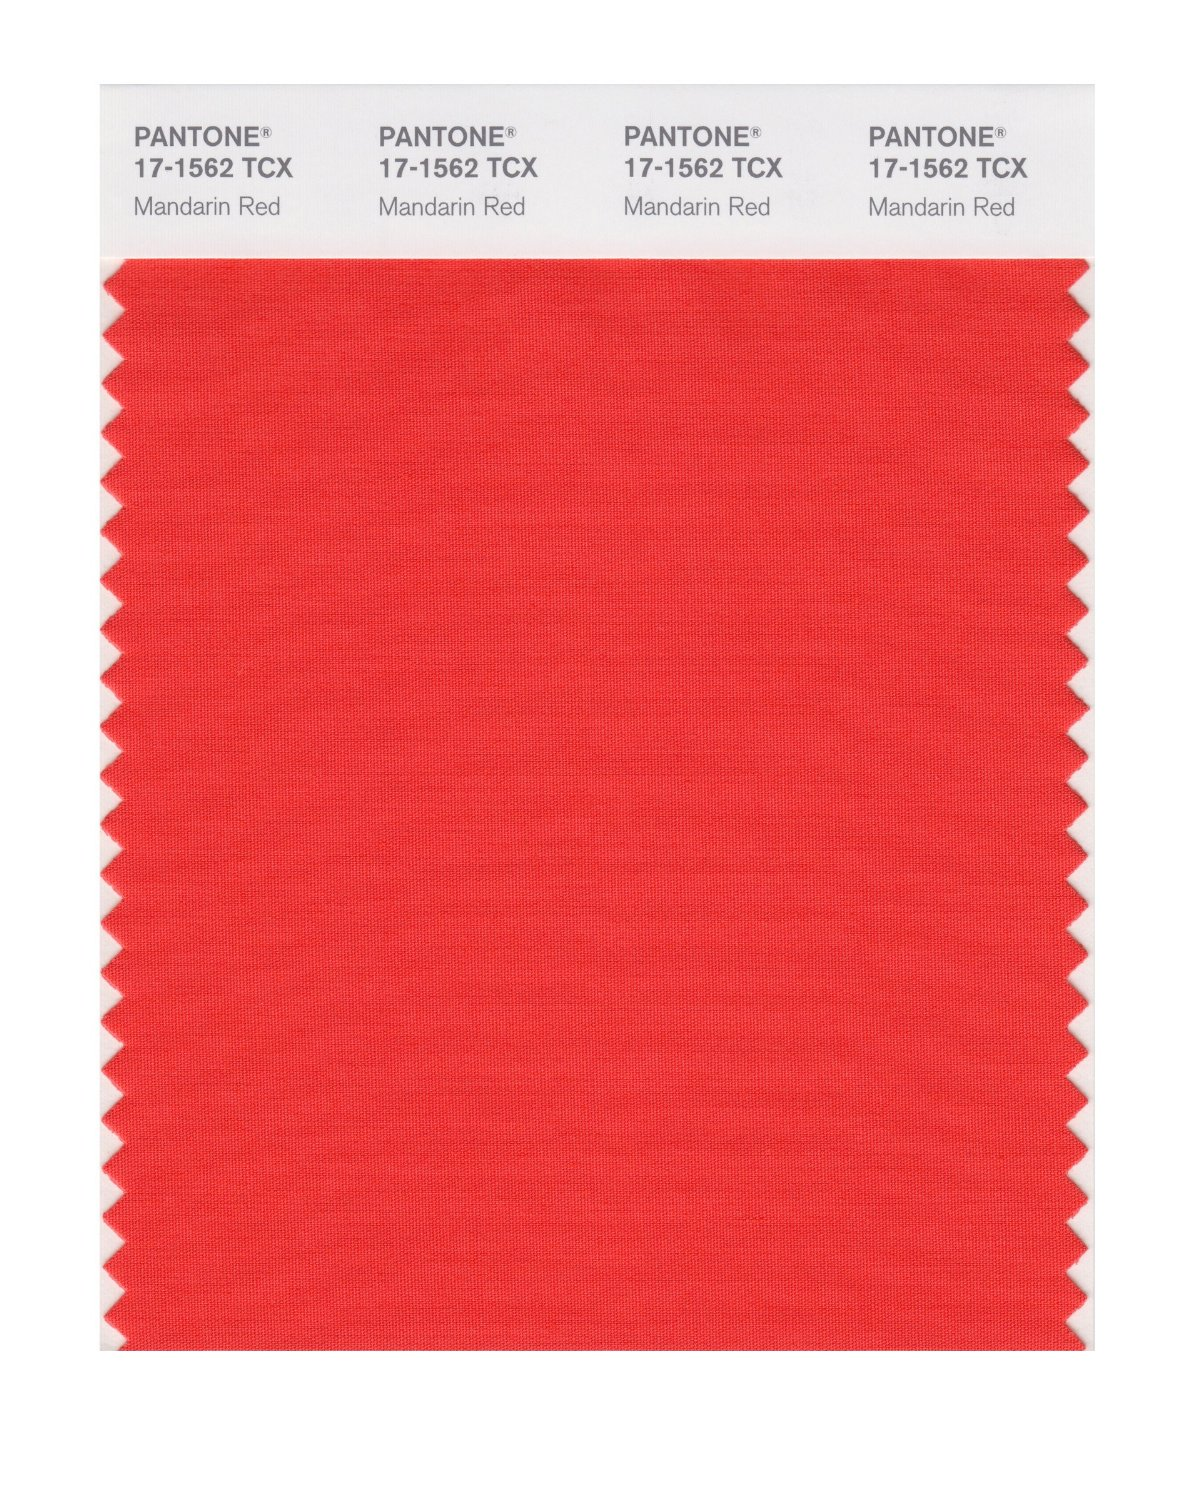 Pantone Smart Swatch 17-1562 Mandarin Red